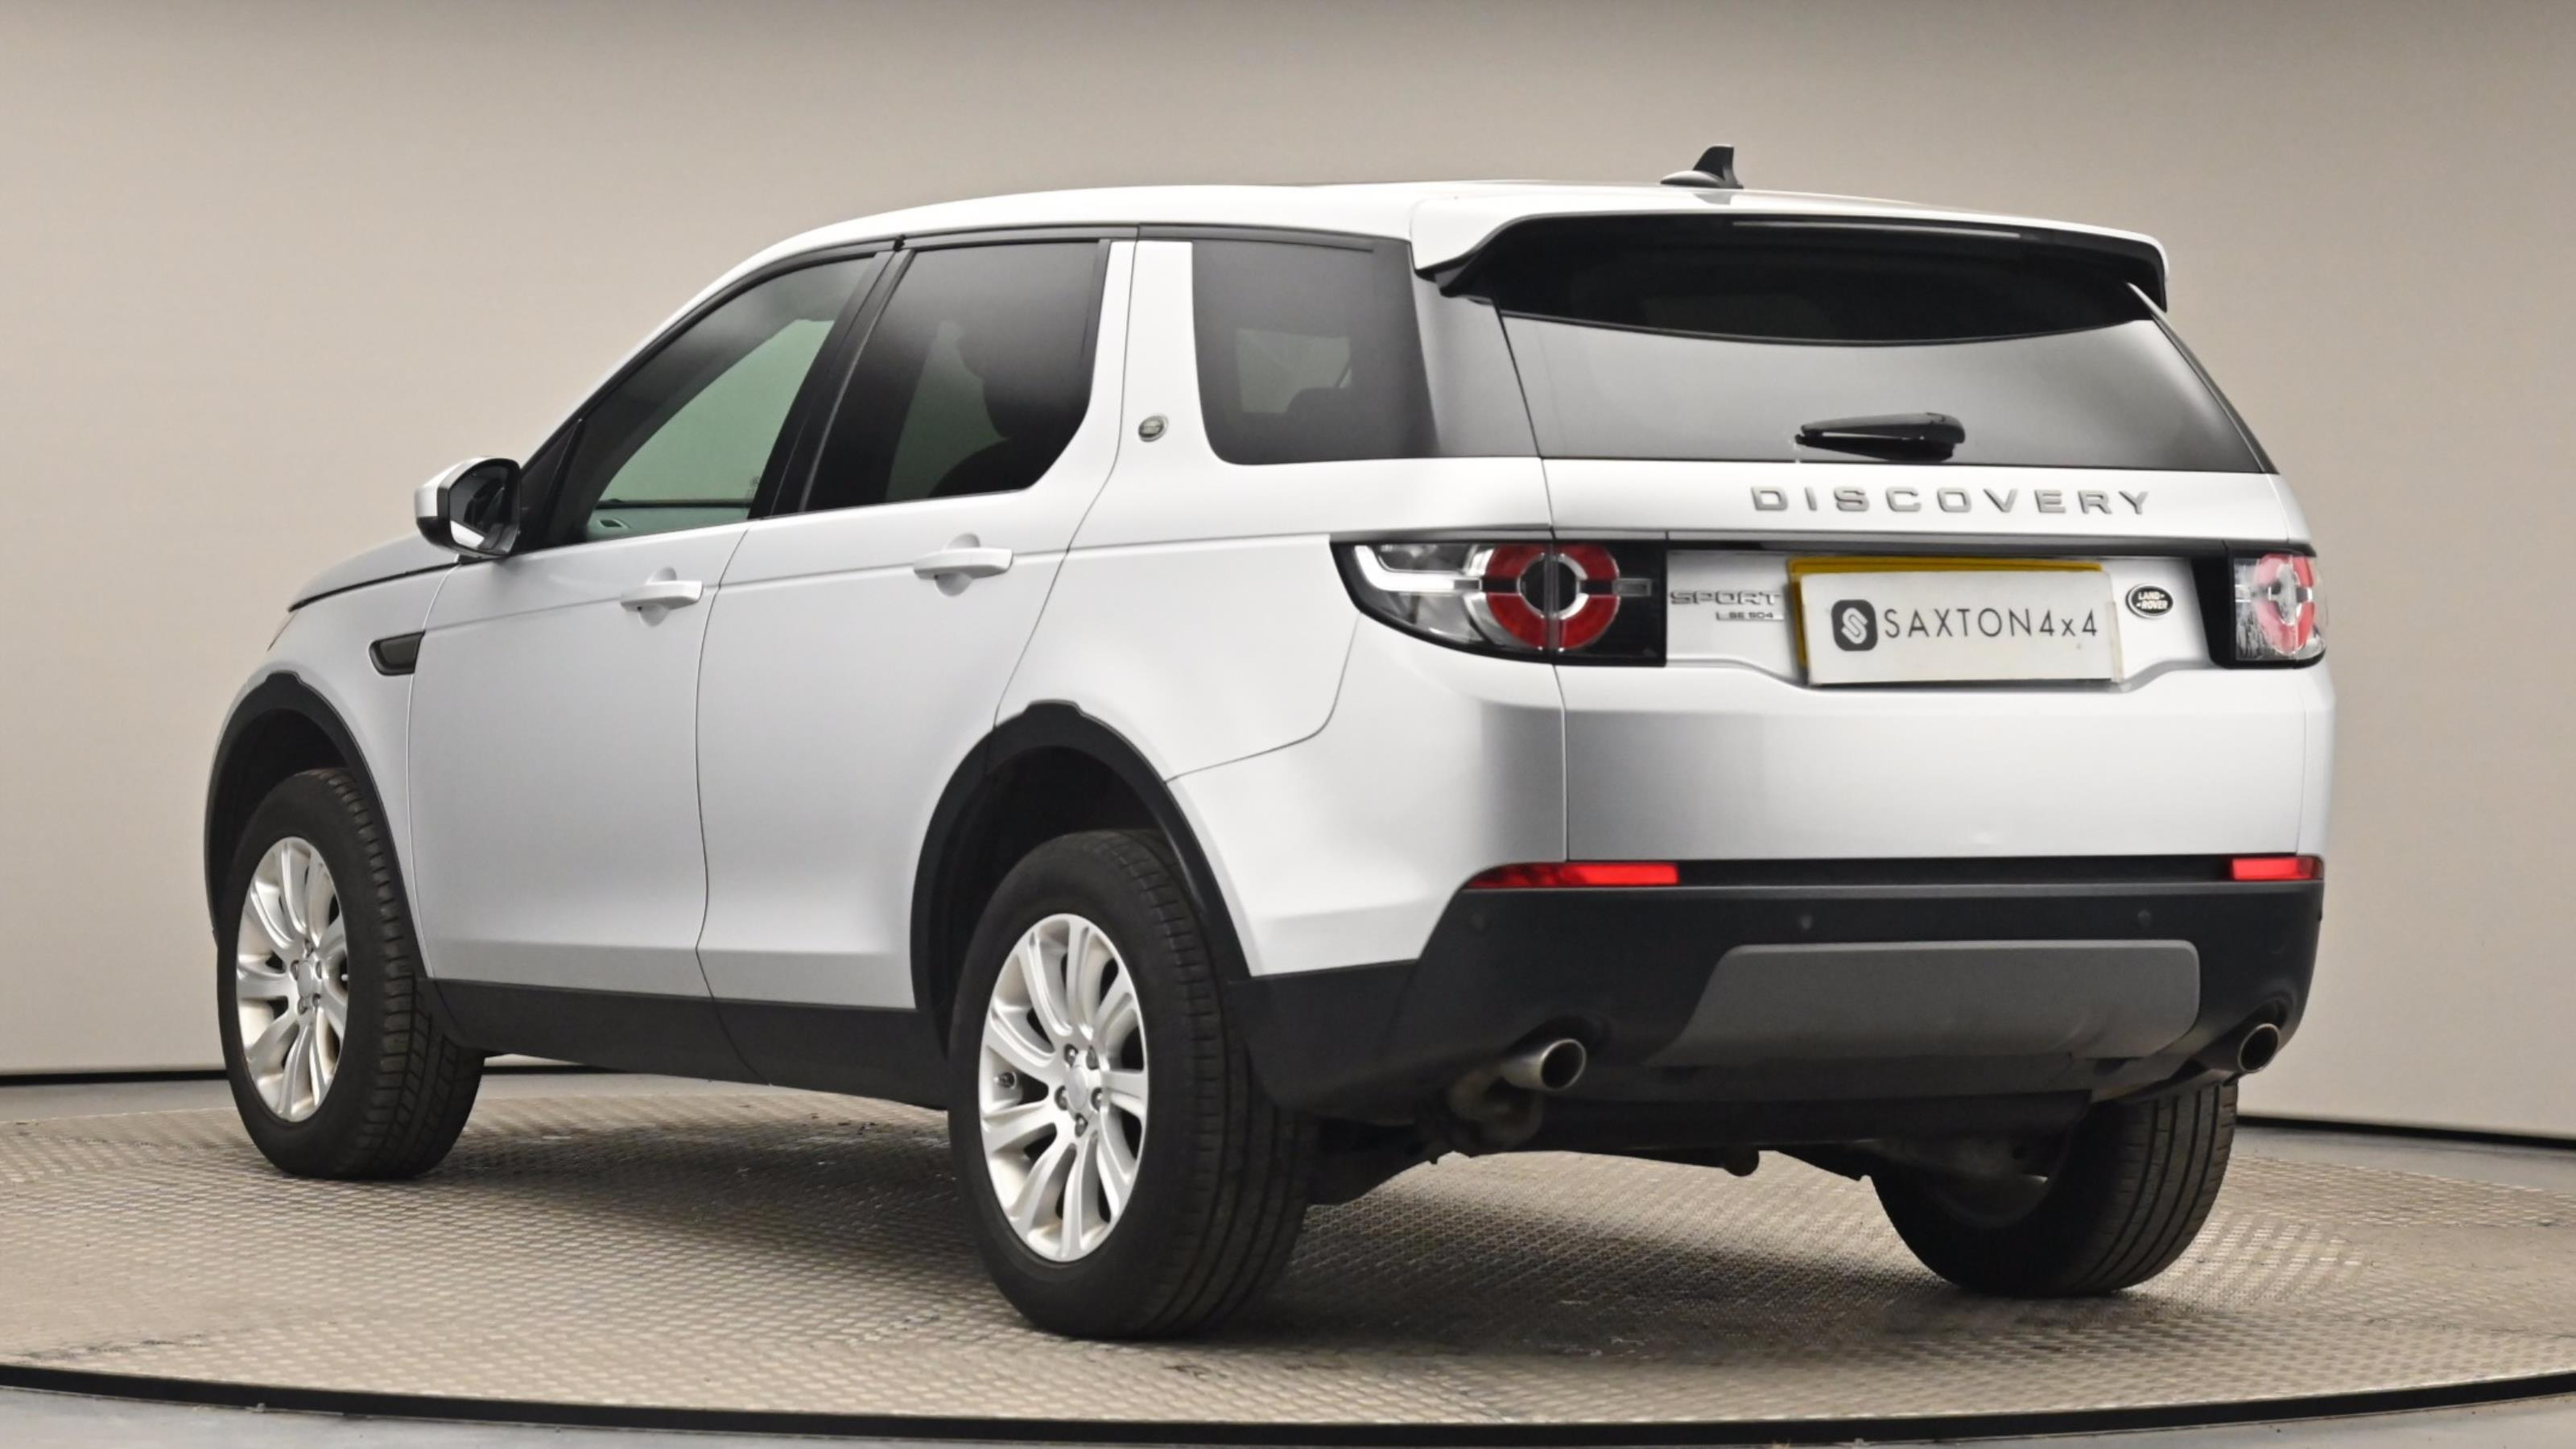 Used 15 Land Rover DISCOVERY SPORT 2.2 SD4 SE 5dr Auto SILVER at Saxton4x4